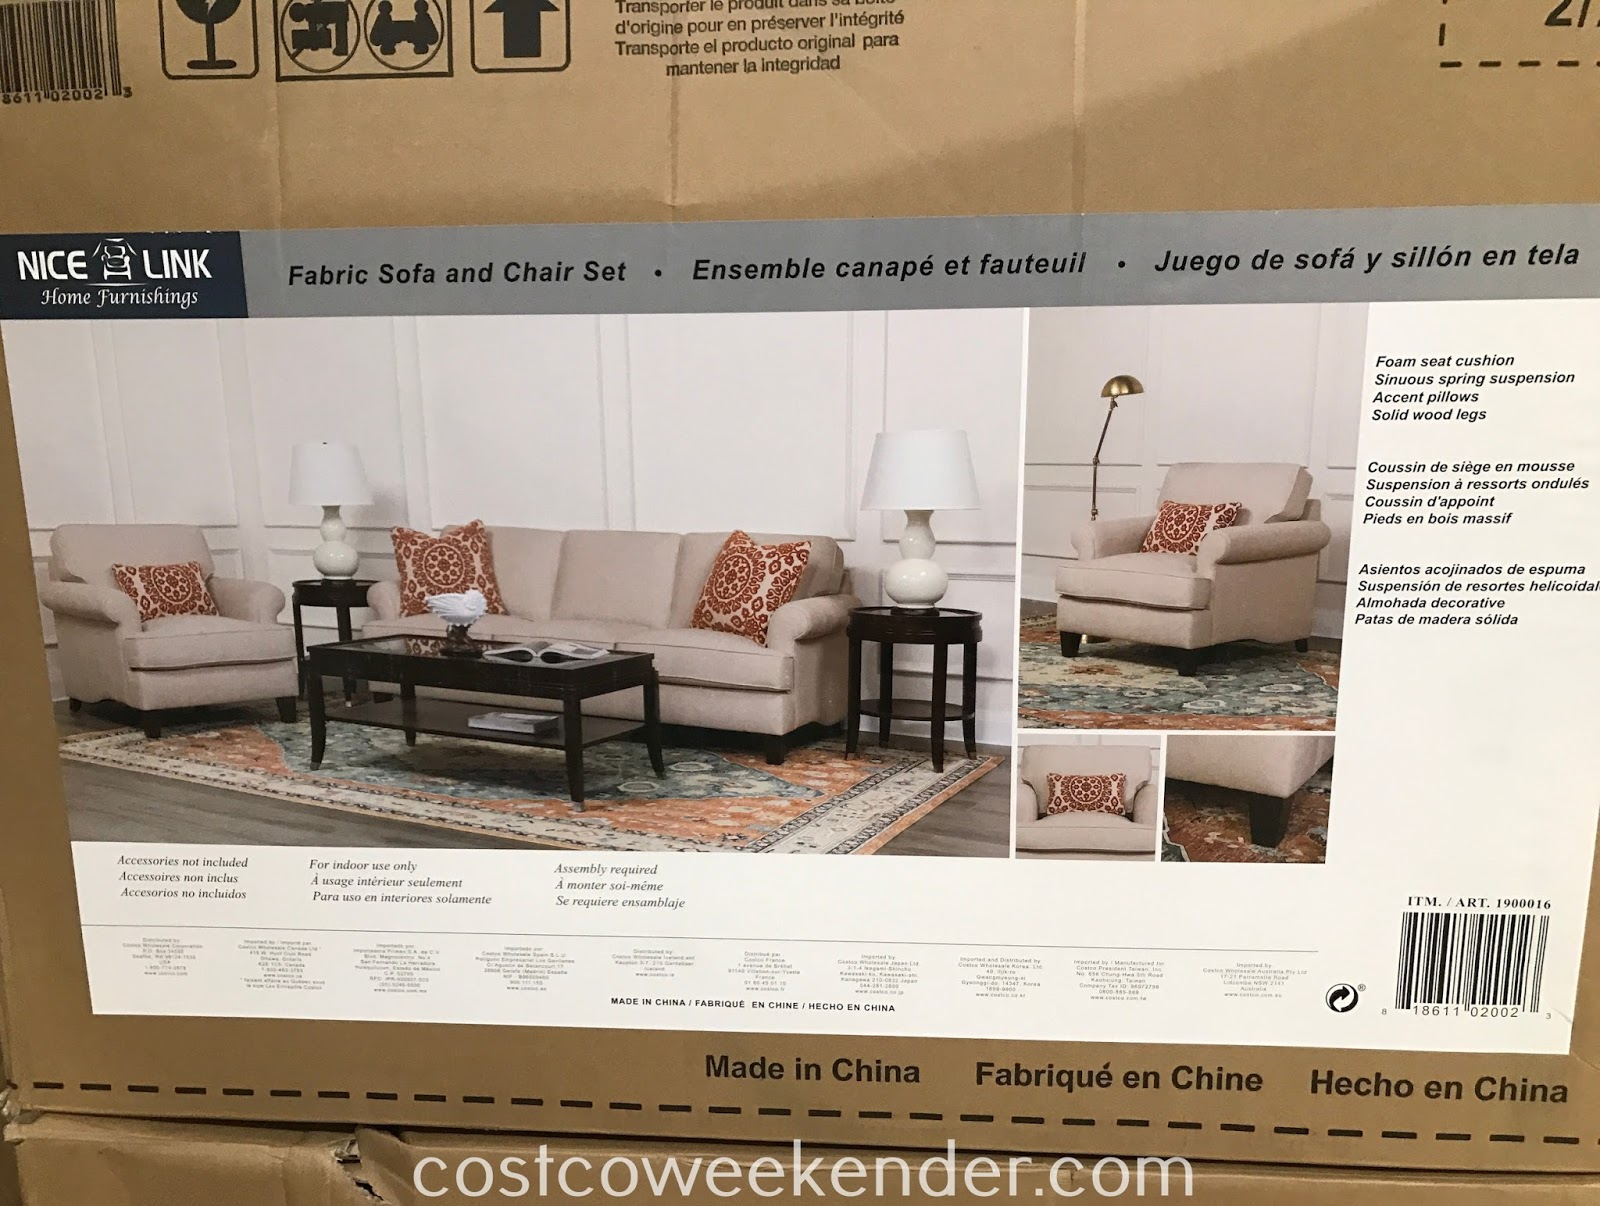 Costco 1900016 - No need to buy separate pieces of furniture with the NiceLink Fabric Sofa & Chair Set